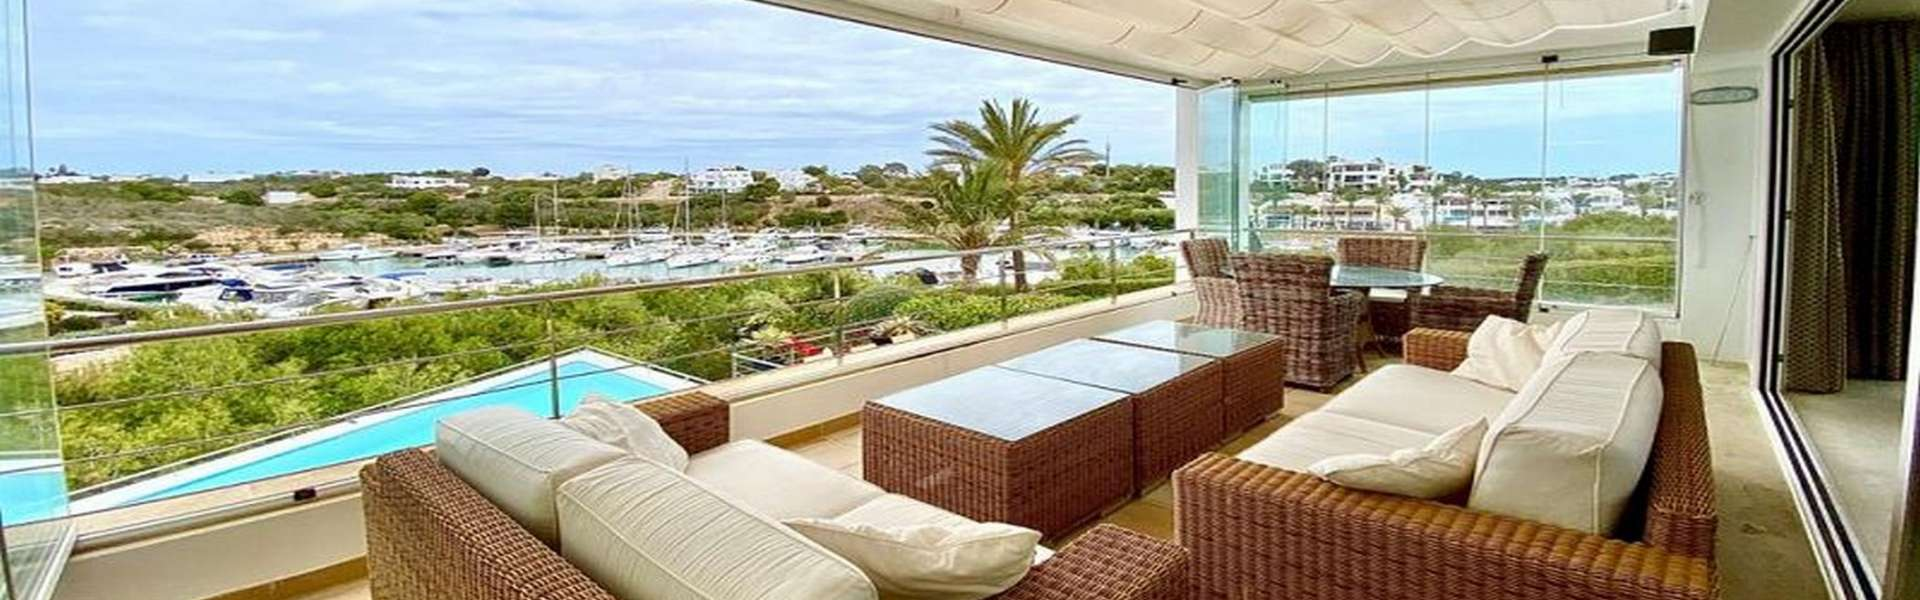 Modern villa with pool and views of the marina in Cala d'Or